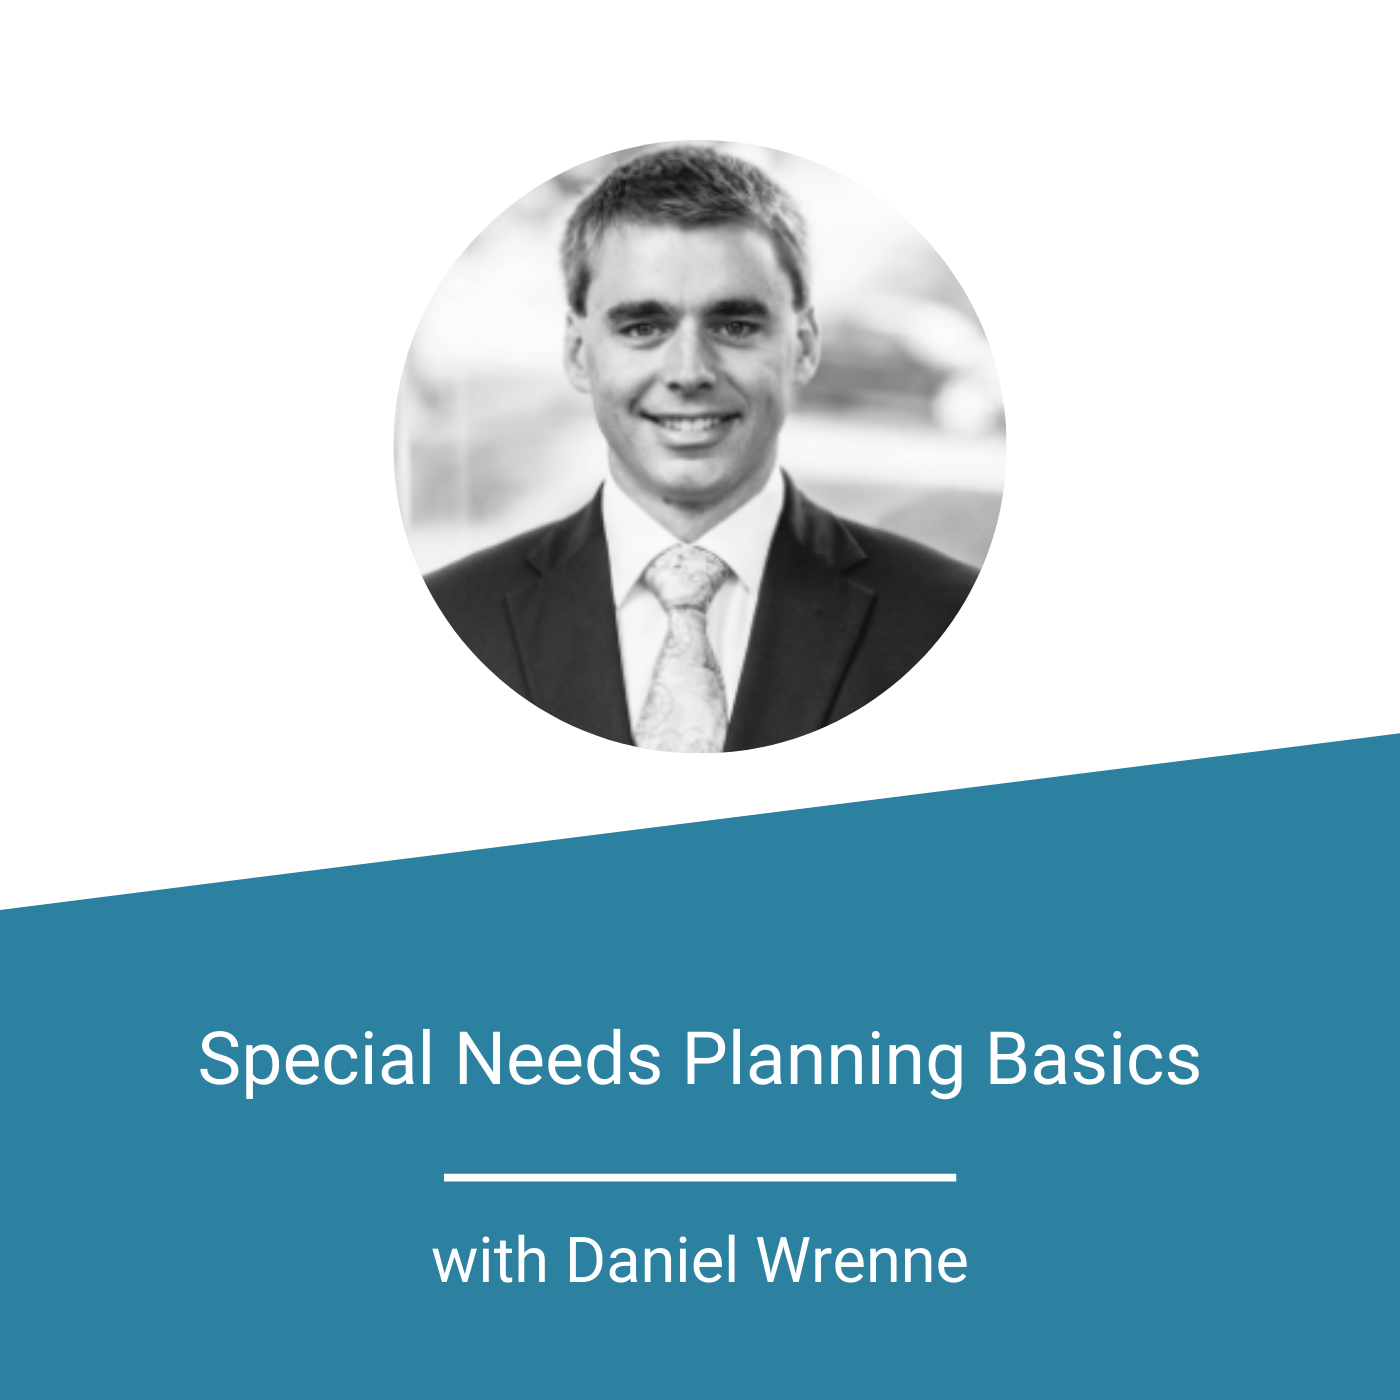 Finance For Physicians - Featured Image - Special Needs Planning Basics